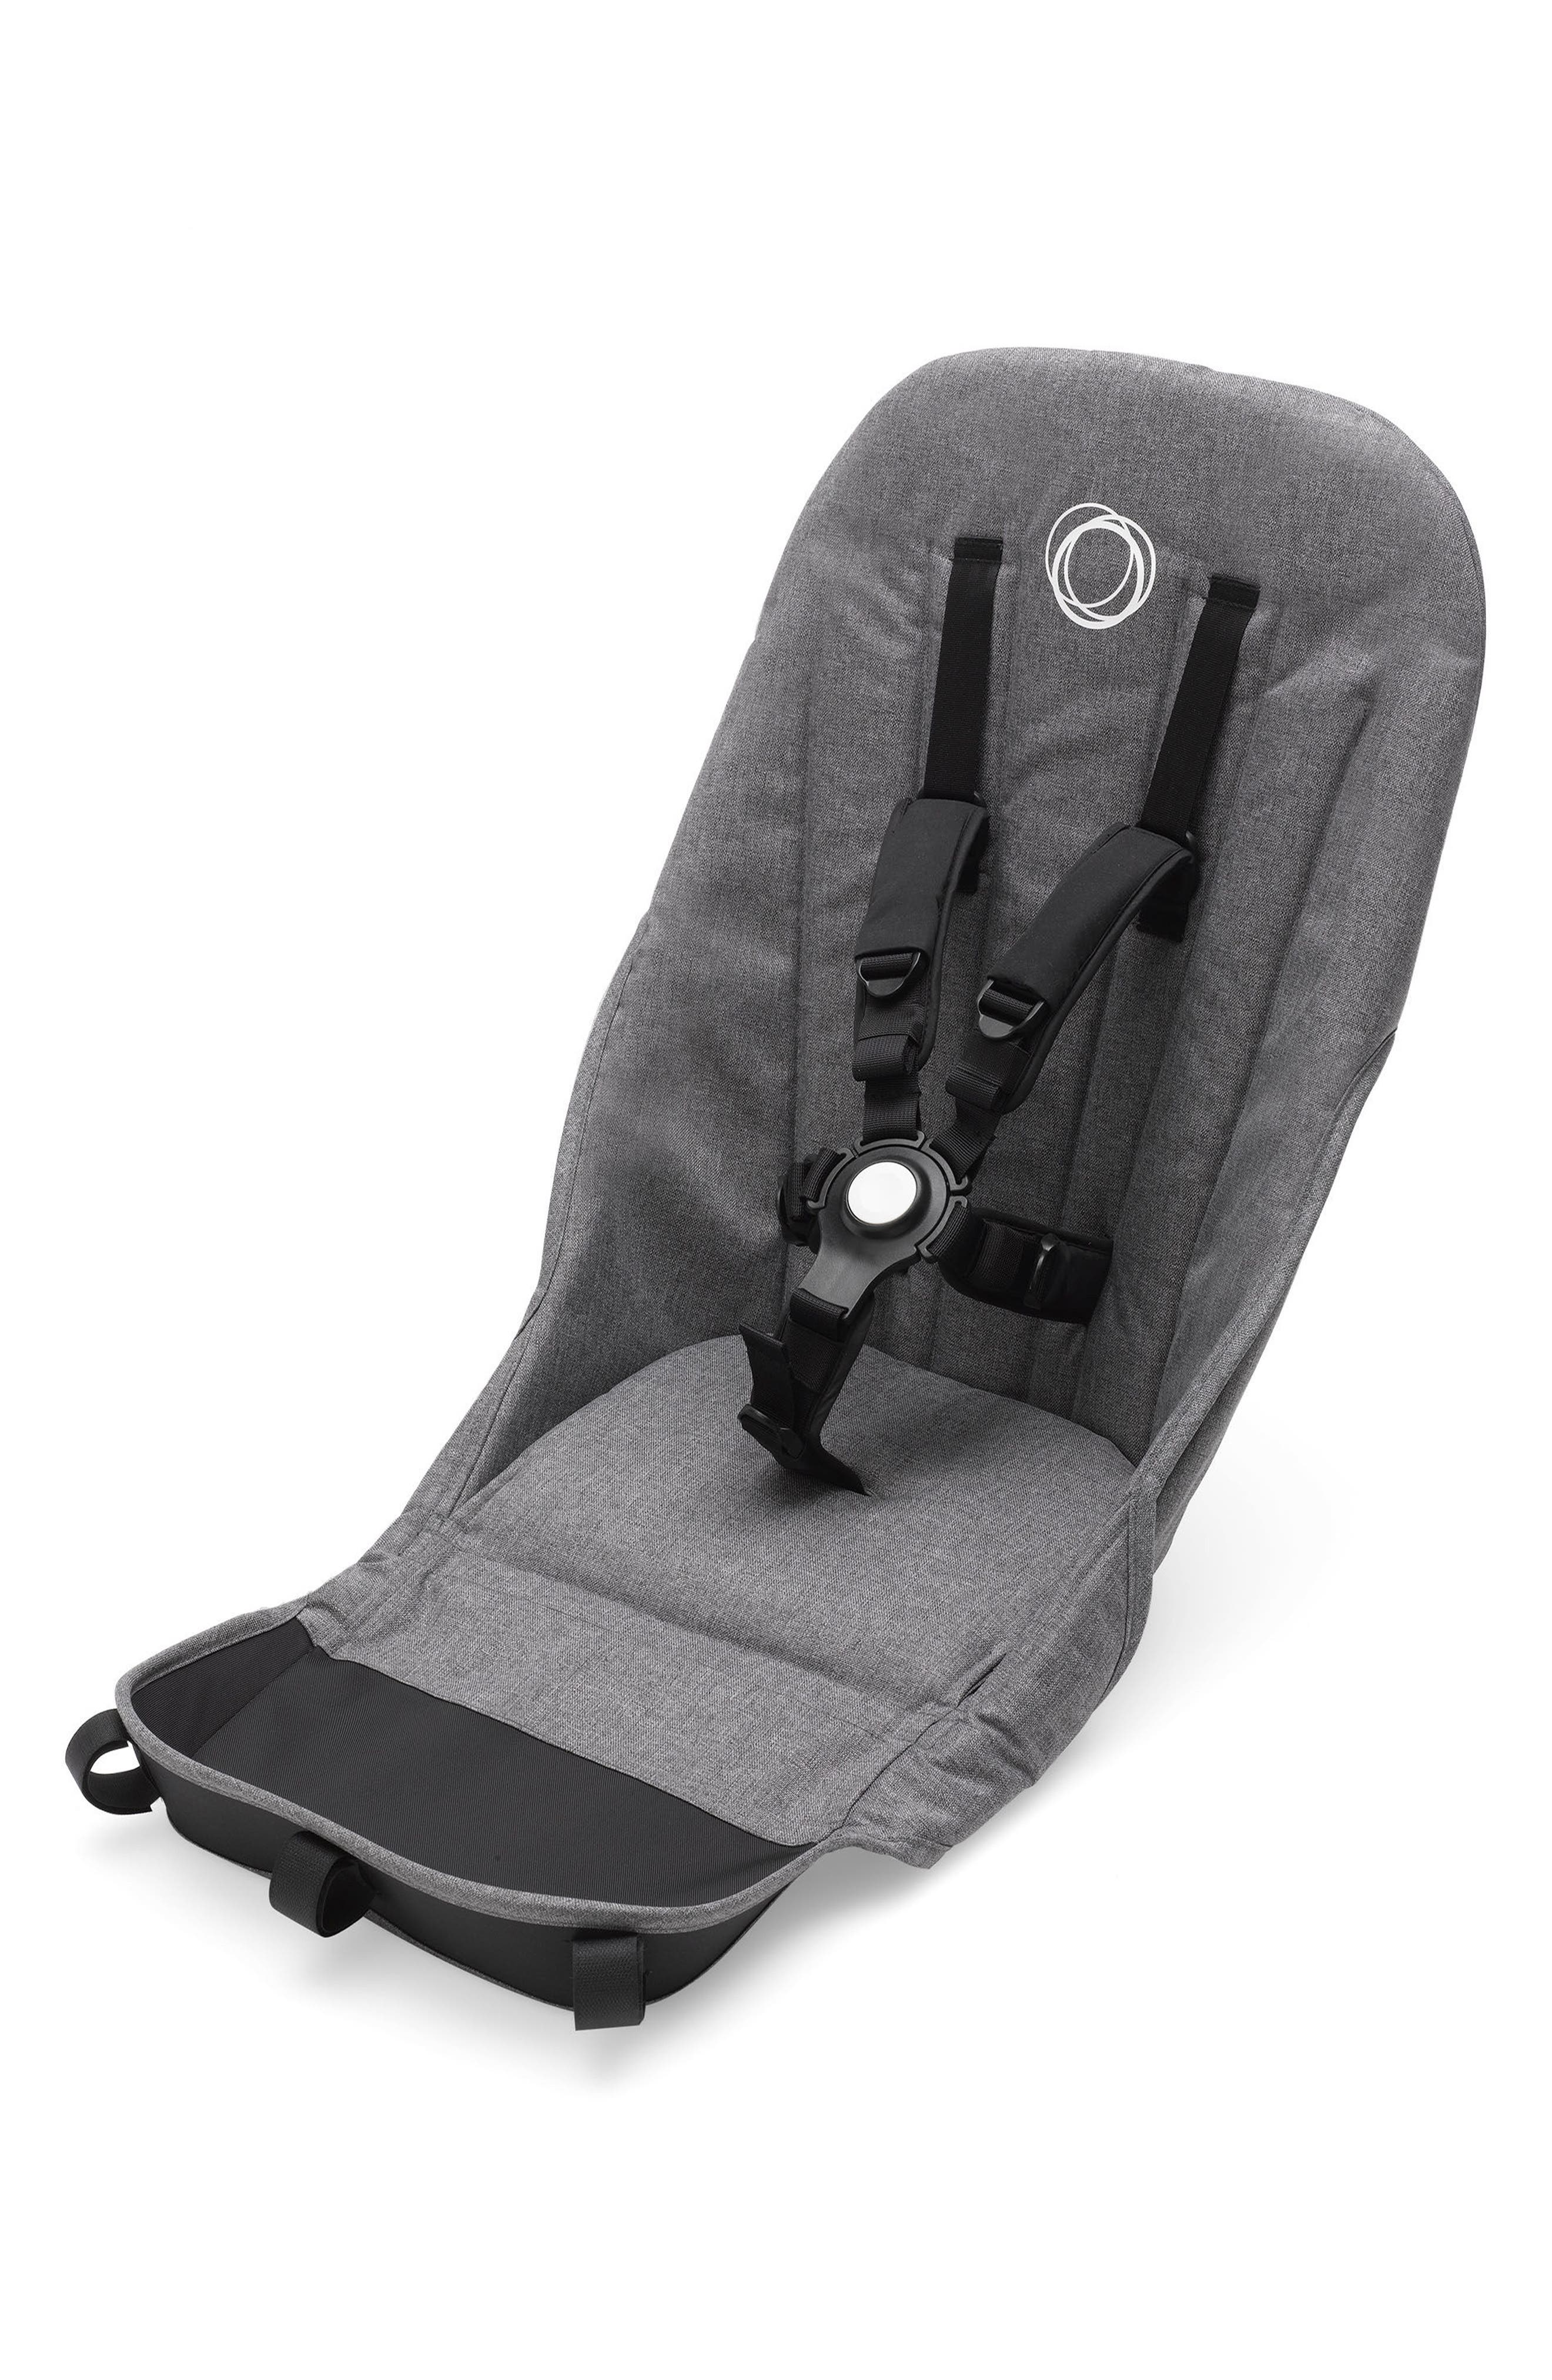 Seat Fabric for Donkey 2 Stroller,                             Main thumbnail 1, color,                             GREY MELANGE